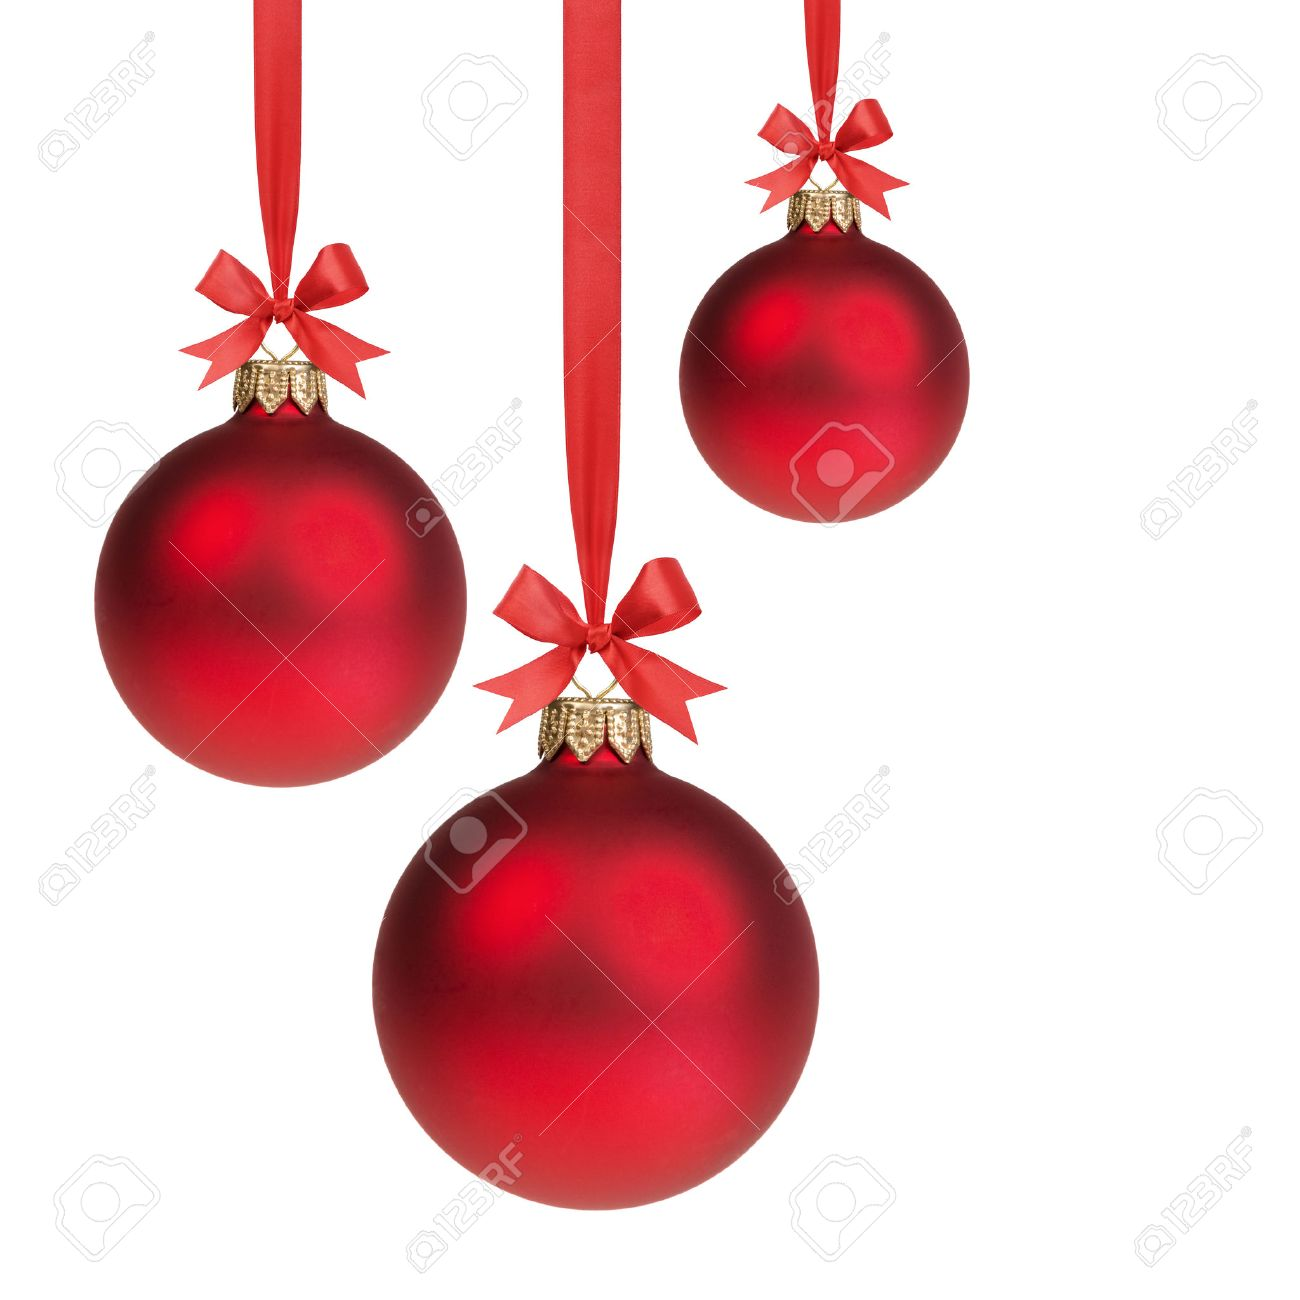 Christmas Balls.Three Red Christmas Balls Hanging On Ribbon With Bows Isolated